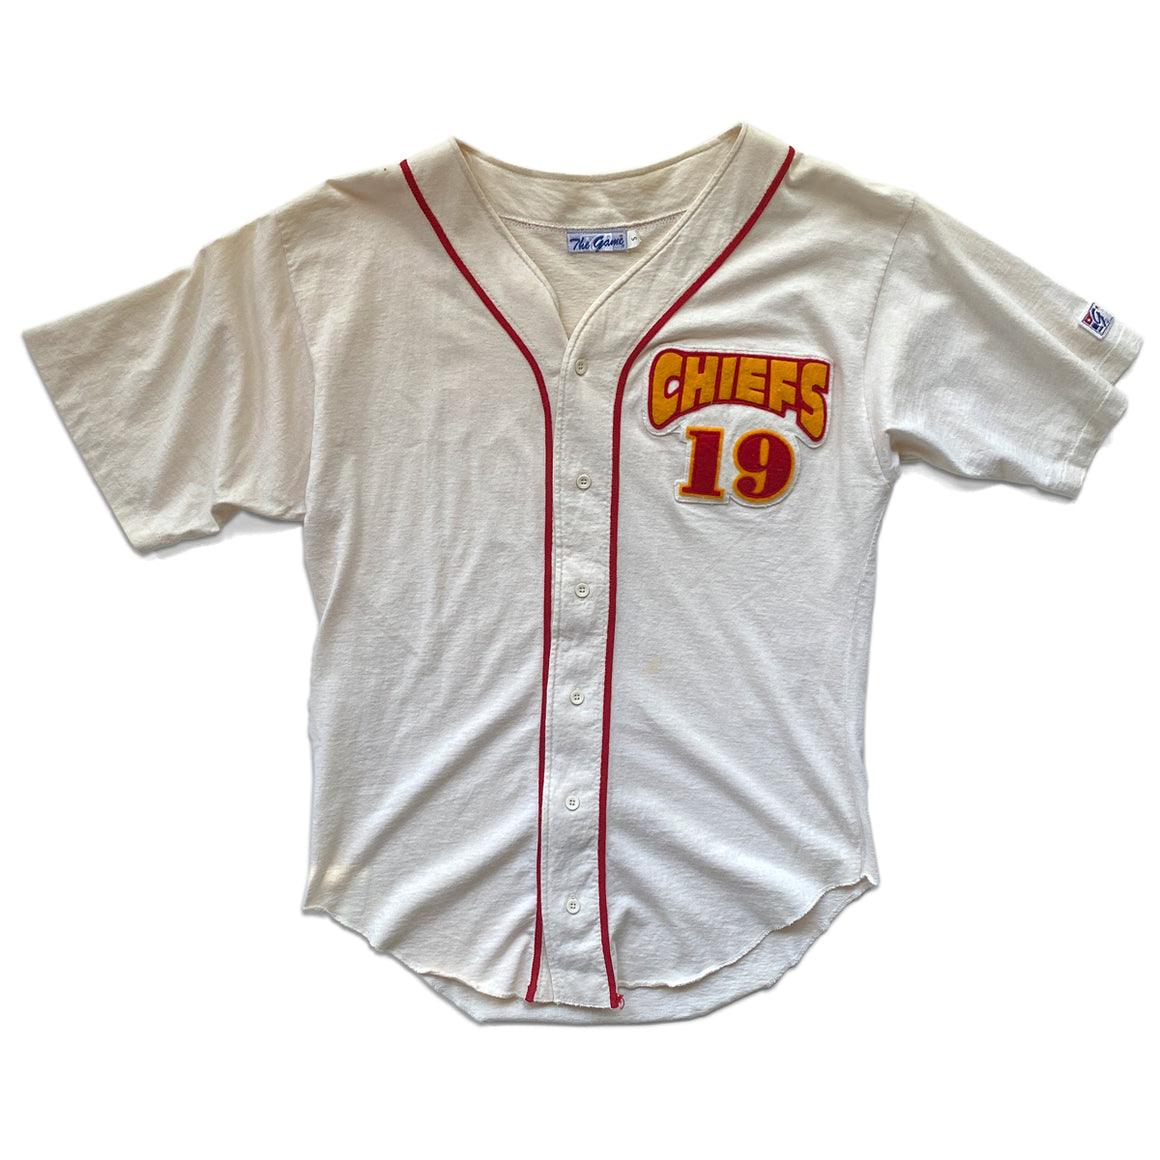 WESTSIDE STOREY VINTAGE | THE GAME KC CHIEFS JOE MONTANA BASEBALL JERSEY